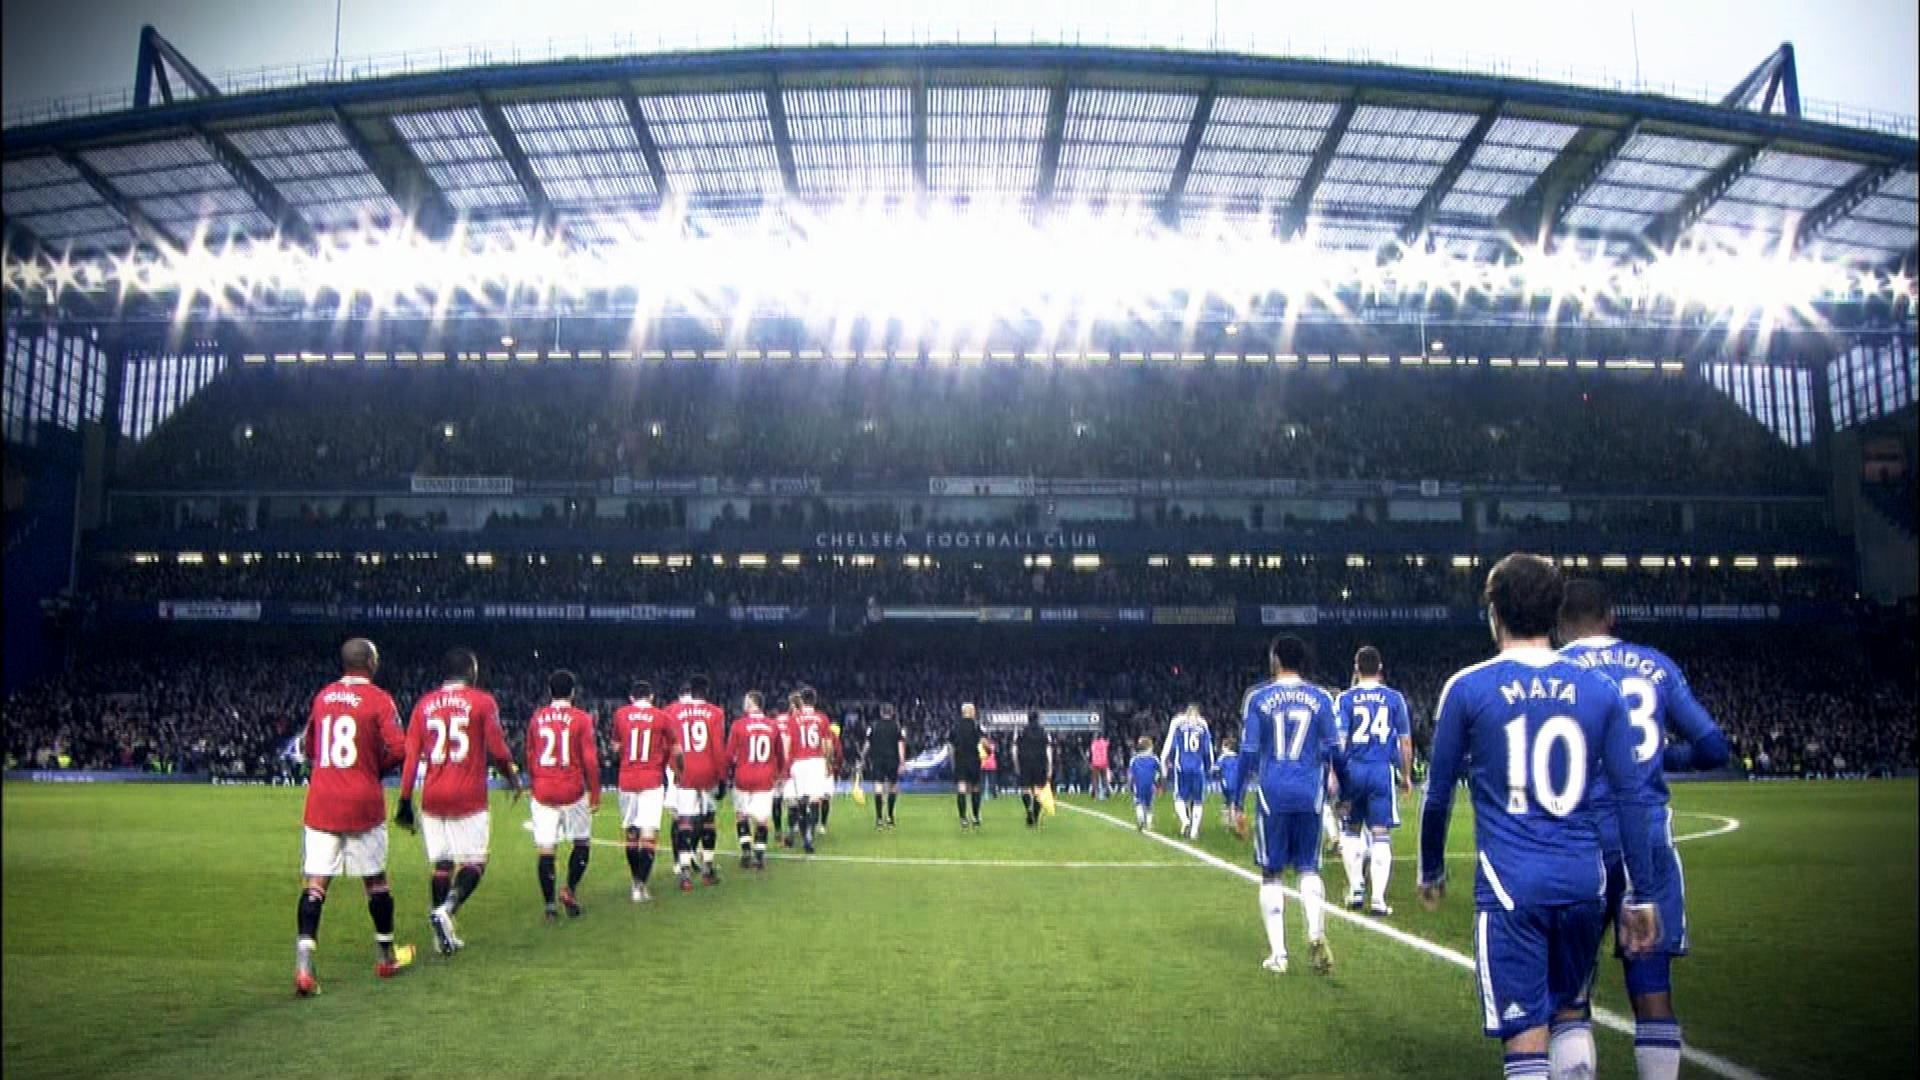 Man United comeback from 3-0 down in 3-3 draw with Chelsea  ad5711a83